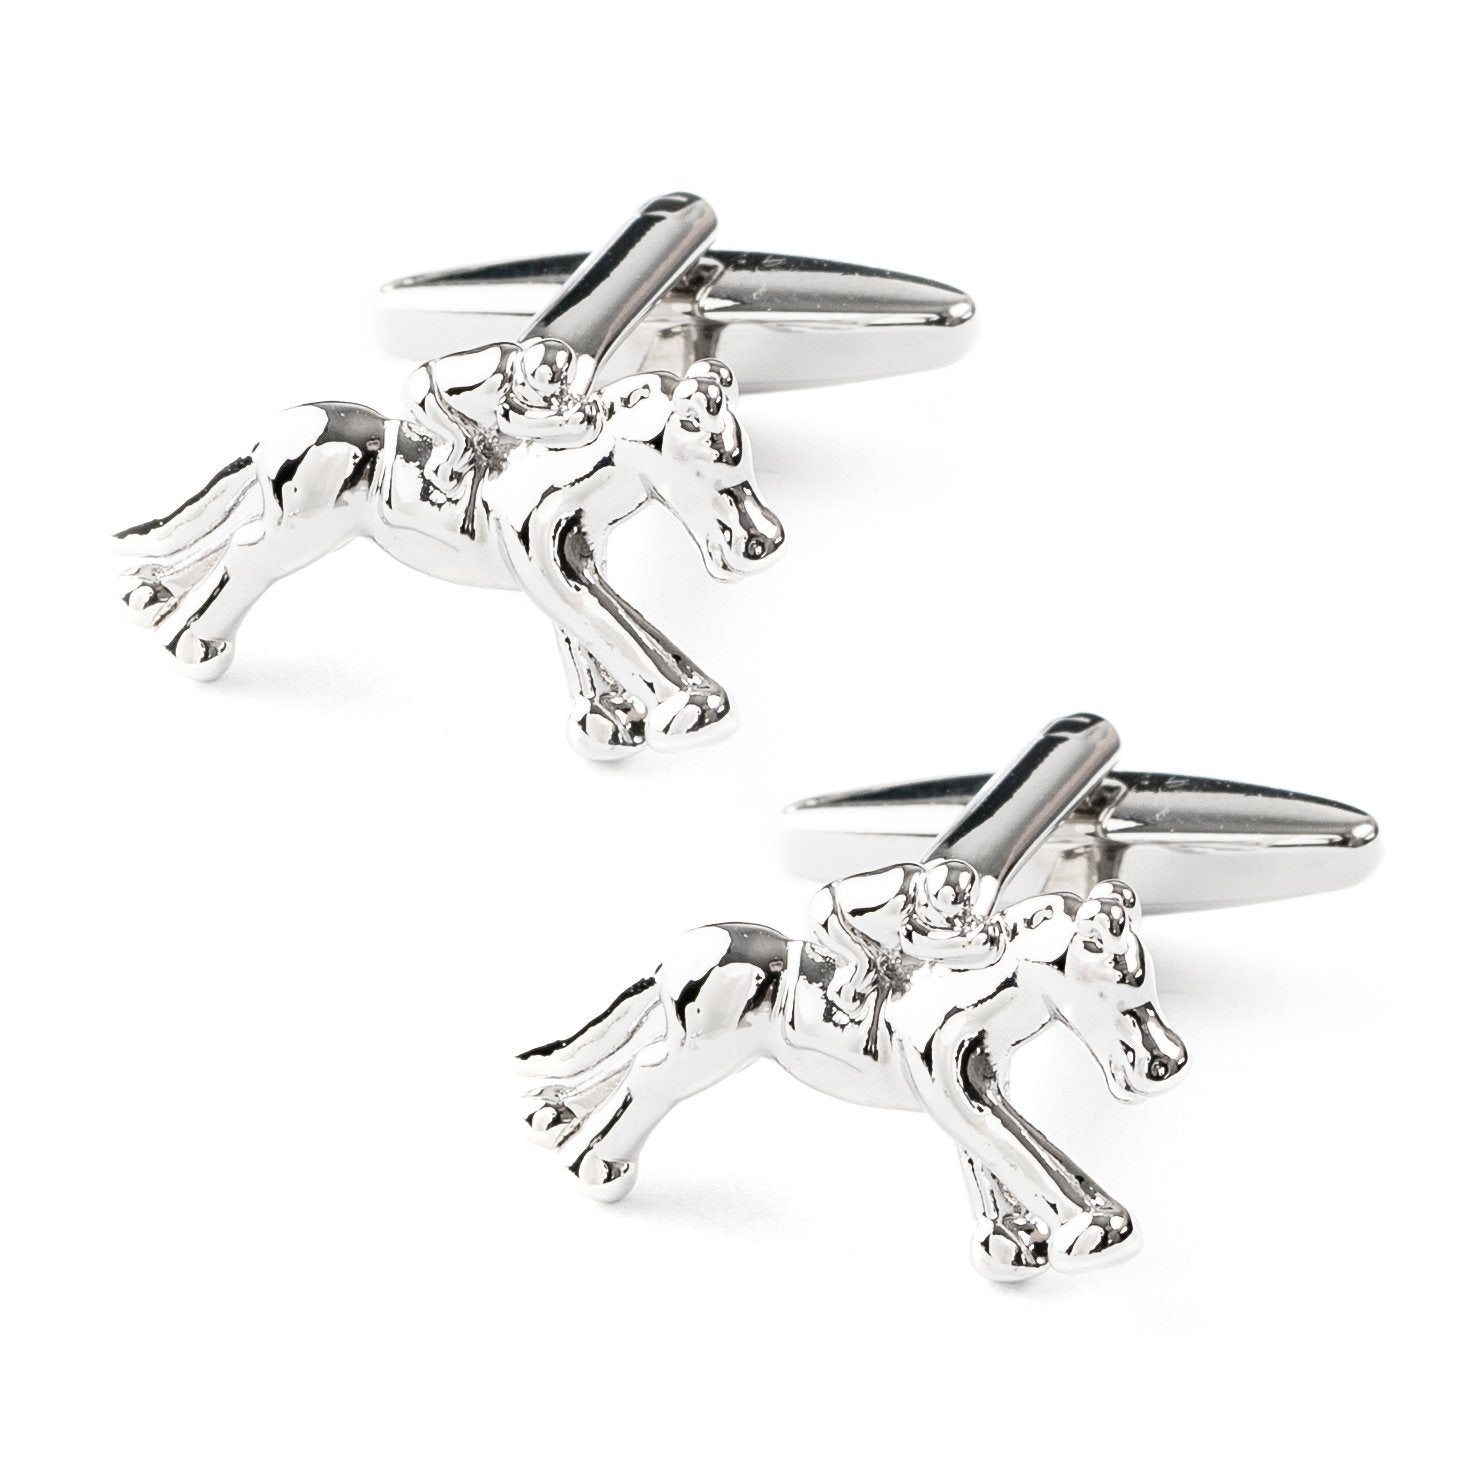 """Melbourne Cup"" Horse Racing Silver Cufflinks, Novelty Cufflinks, Cuffed.com.au, CL6300, Animals, Gambling, Horses, Silver, Clinks Australia"